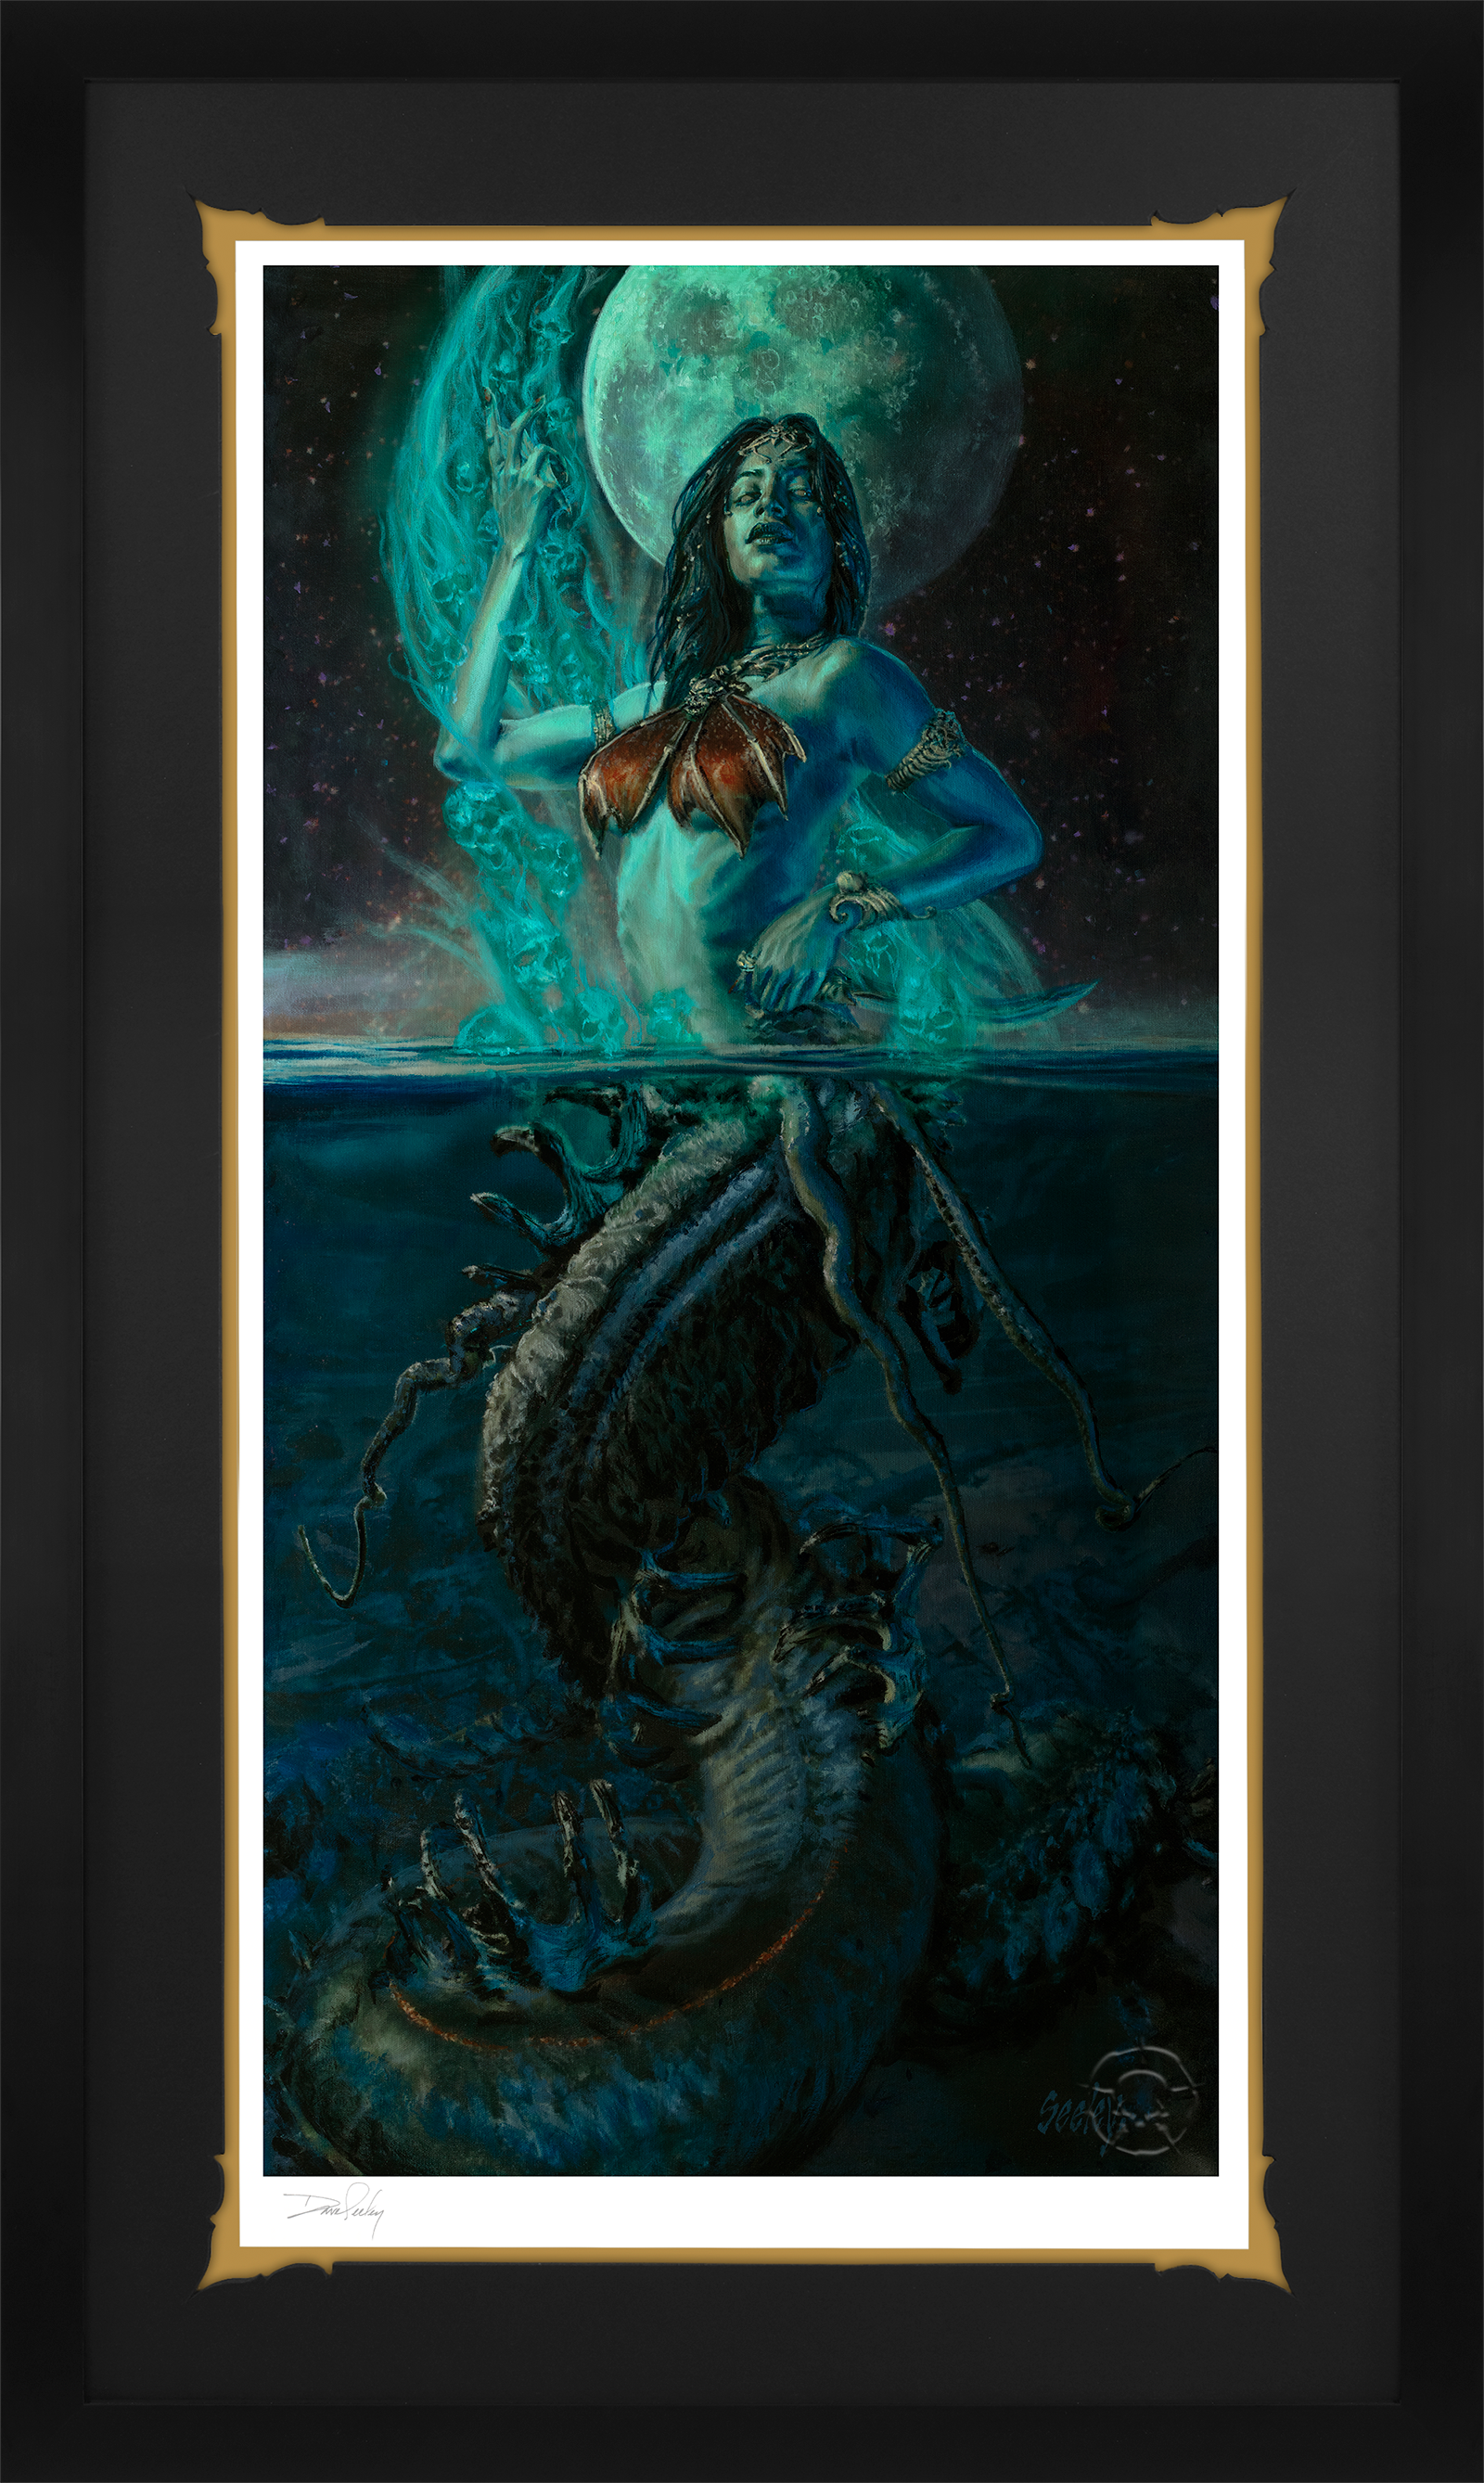 Sideshow Collectibles Gallevarbe: Beyond the Veils Art Print